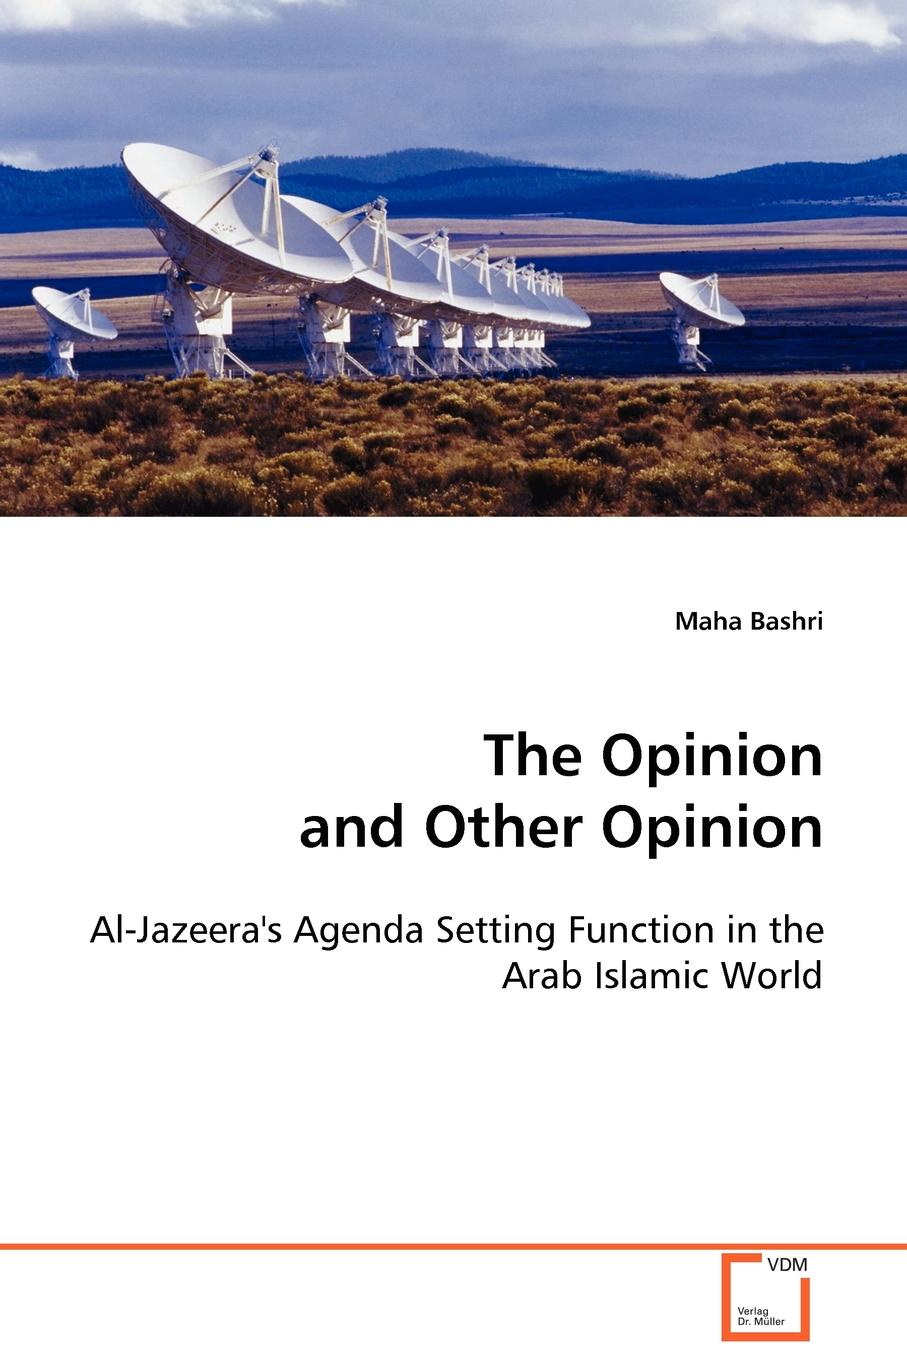 Maha Bashri The Opinion and Other Opinion ralph b levering american opinion and the russian alliance 1939 1945